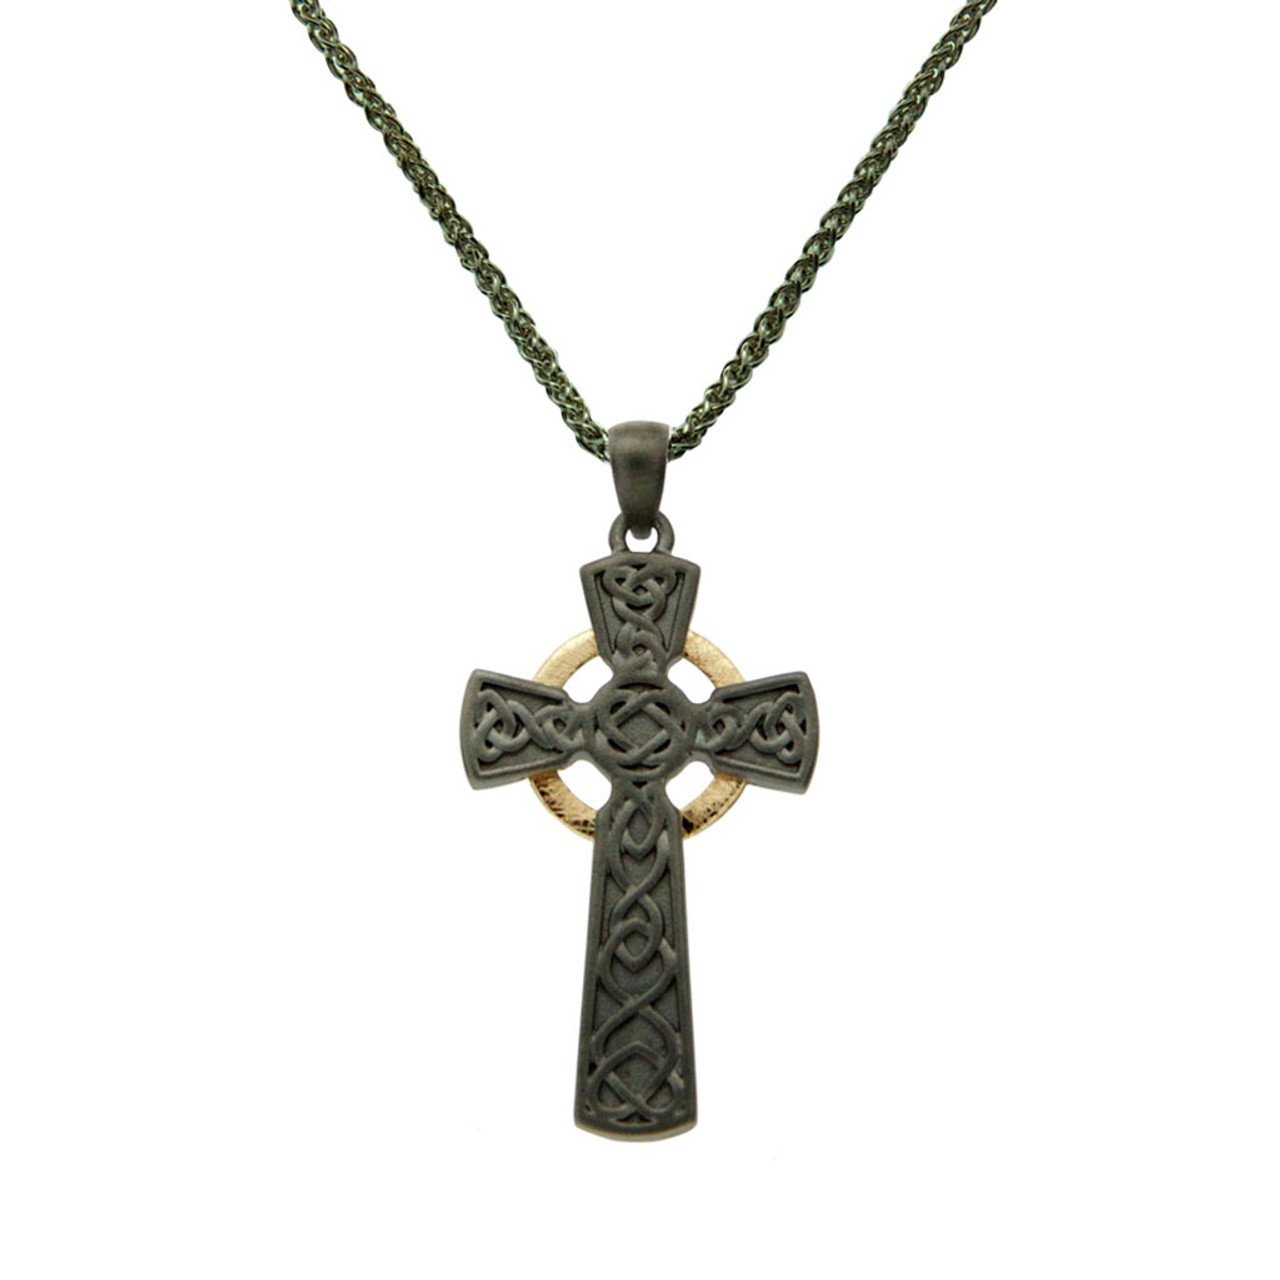 cross corps p celtic necklace marine sterling web emblem silver w